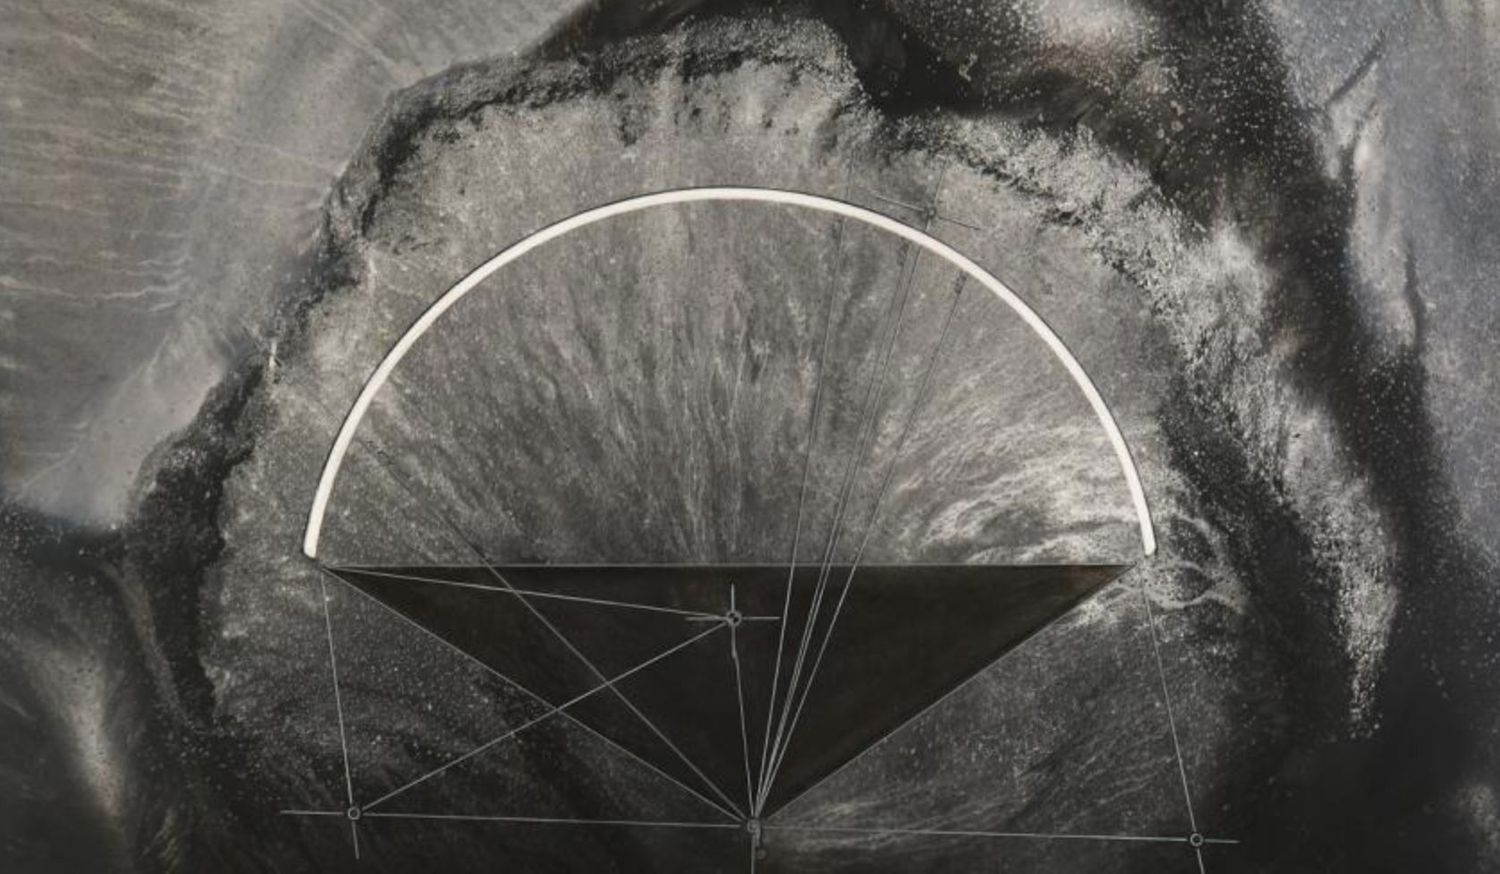 The Observable Universe: Visualizing the Cosmos in Art - Exhibition